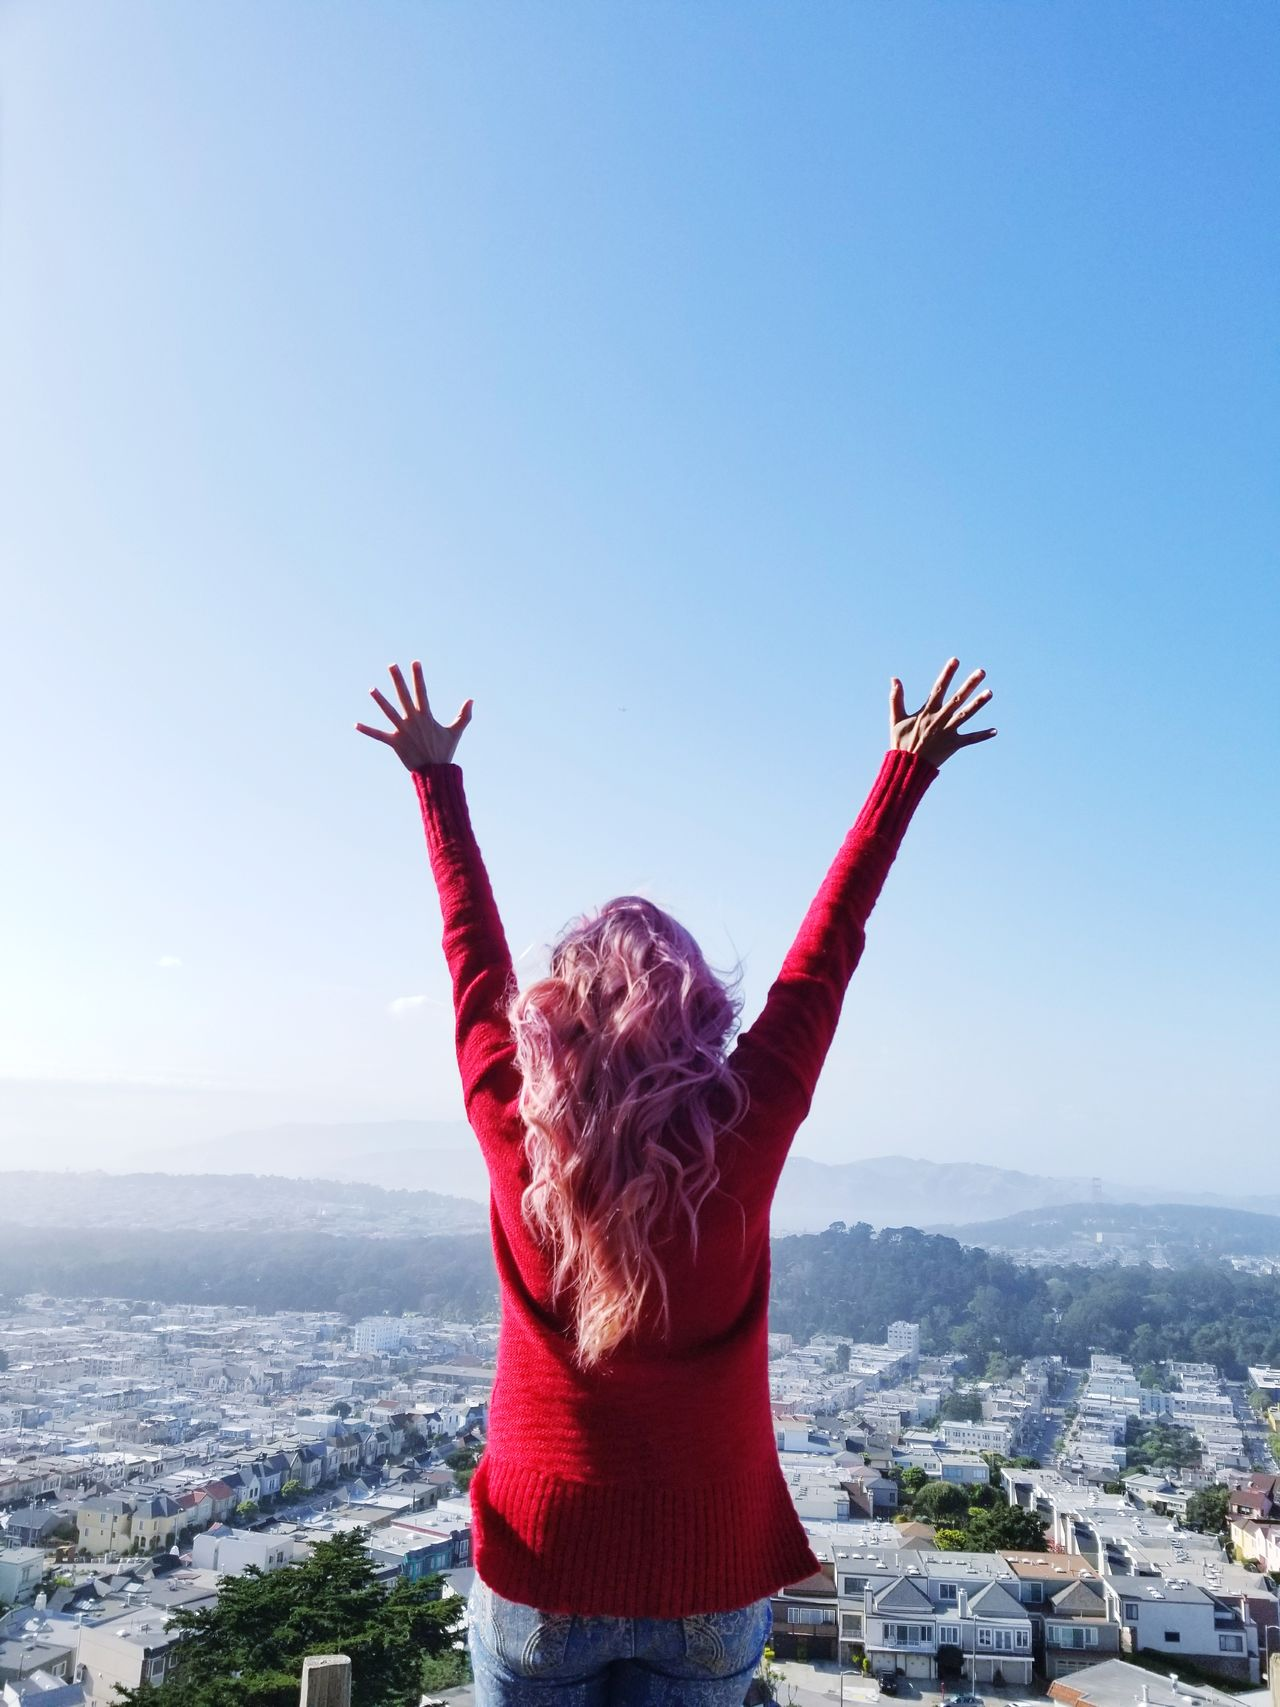 One Woman Only One Young Woman Only Cityscape Adult One Person Outdoors Happiness Day Sky Architecture Built Structure Rear View City Urban Skyline Cloud - Sky Travel Destinations Red San Francisco EyeEmNewHere